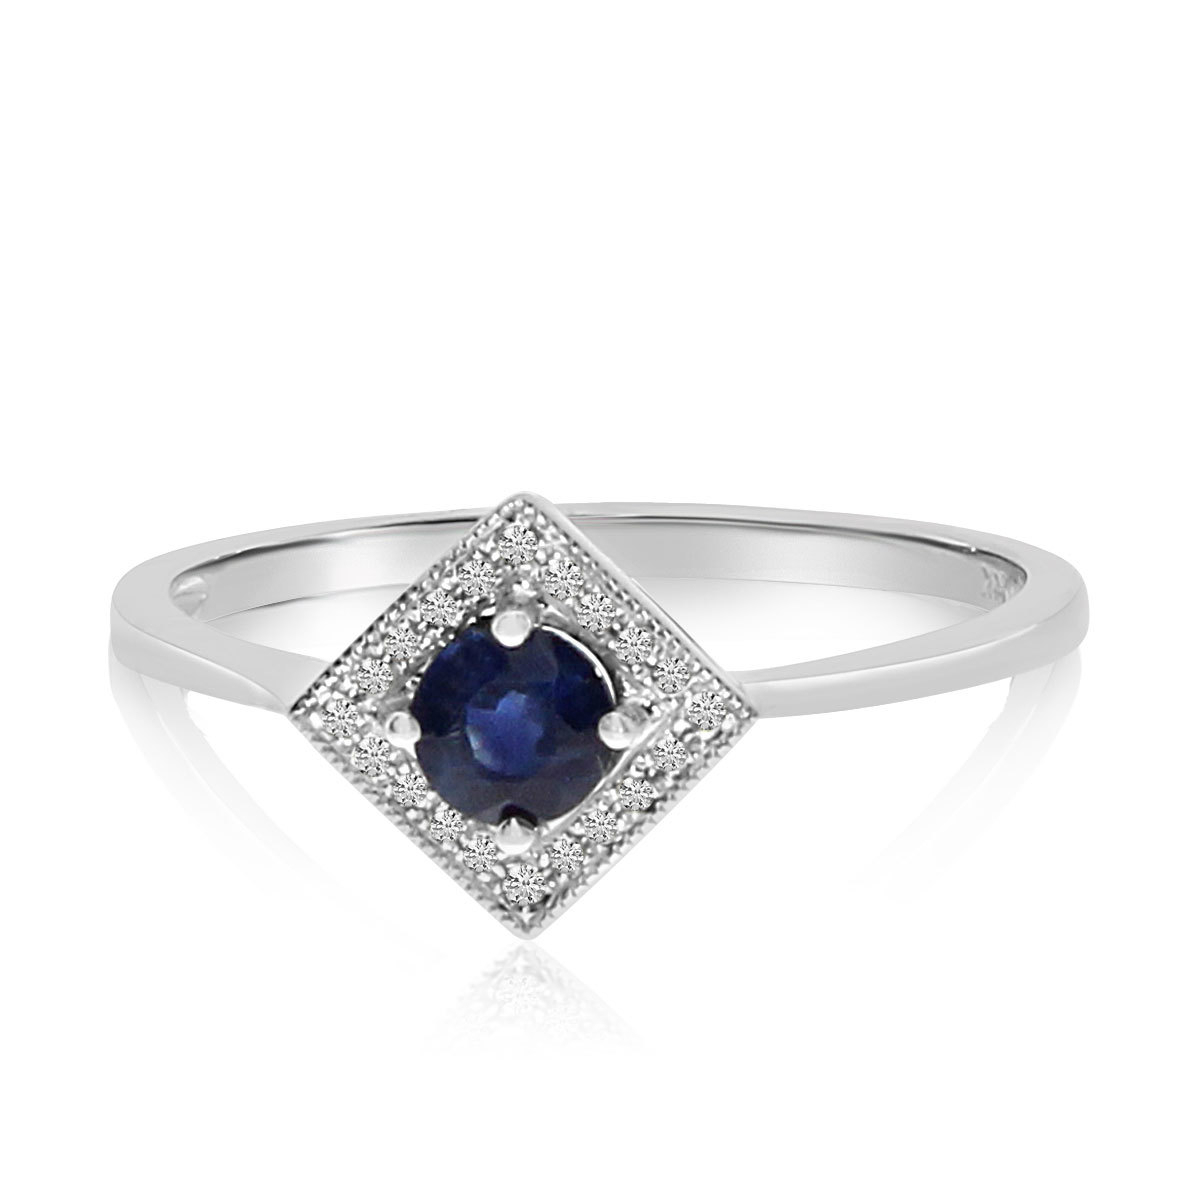 Sappire & Diamond Ring 14K White Gold – 3Mm Blue Sapphire And Diamond  Square Halo Ring – Sapphire Rings For Women Regarding Most Recent Blue Square Sparkle Halo Rings (Gallery 13 of 25)